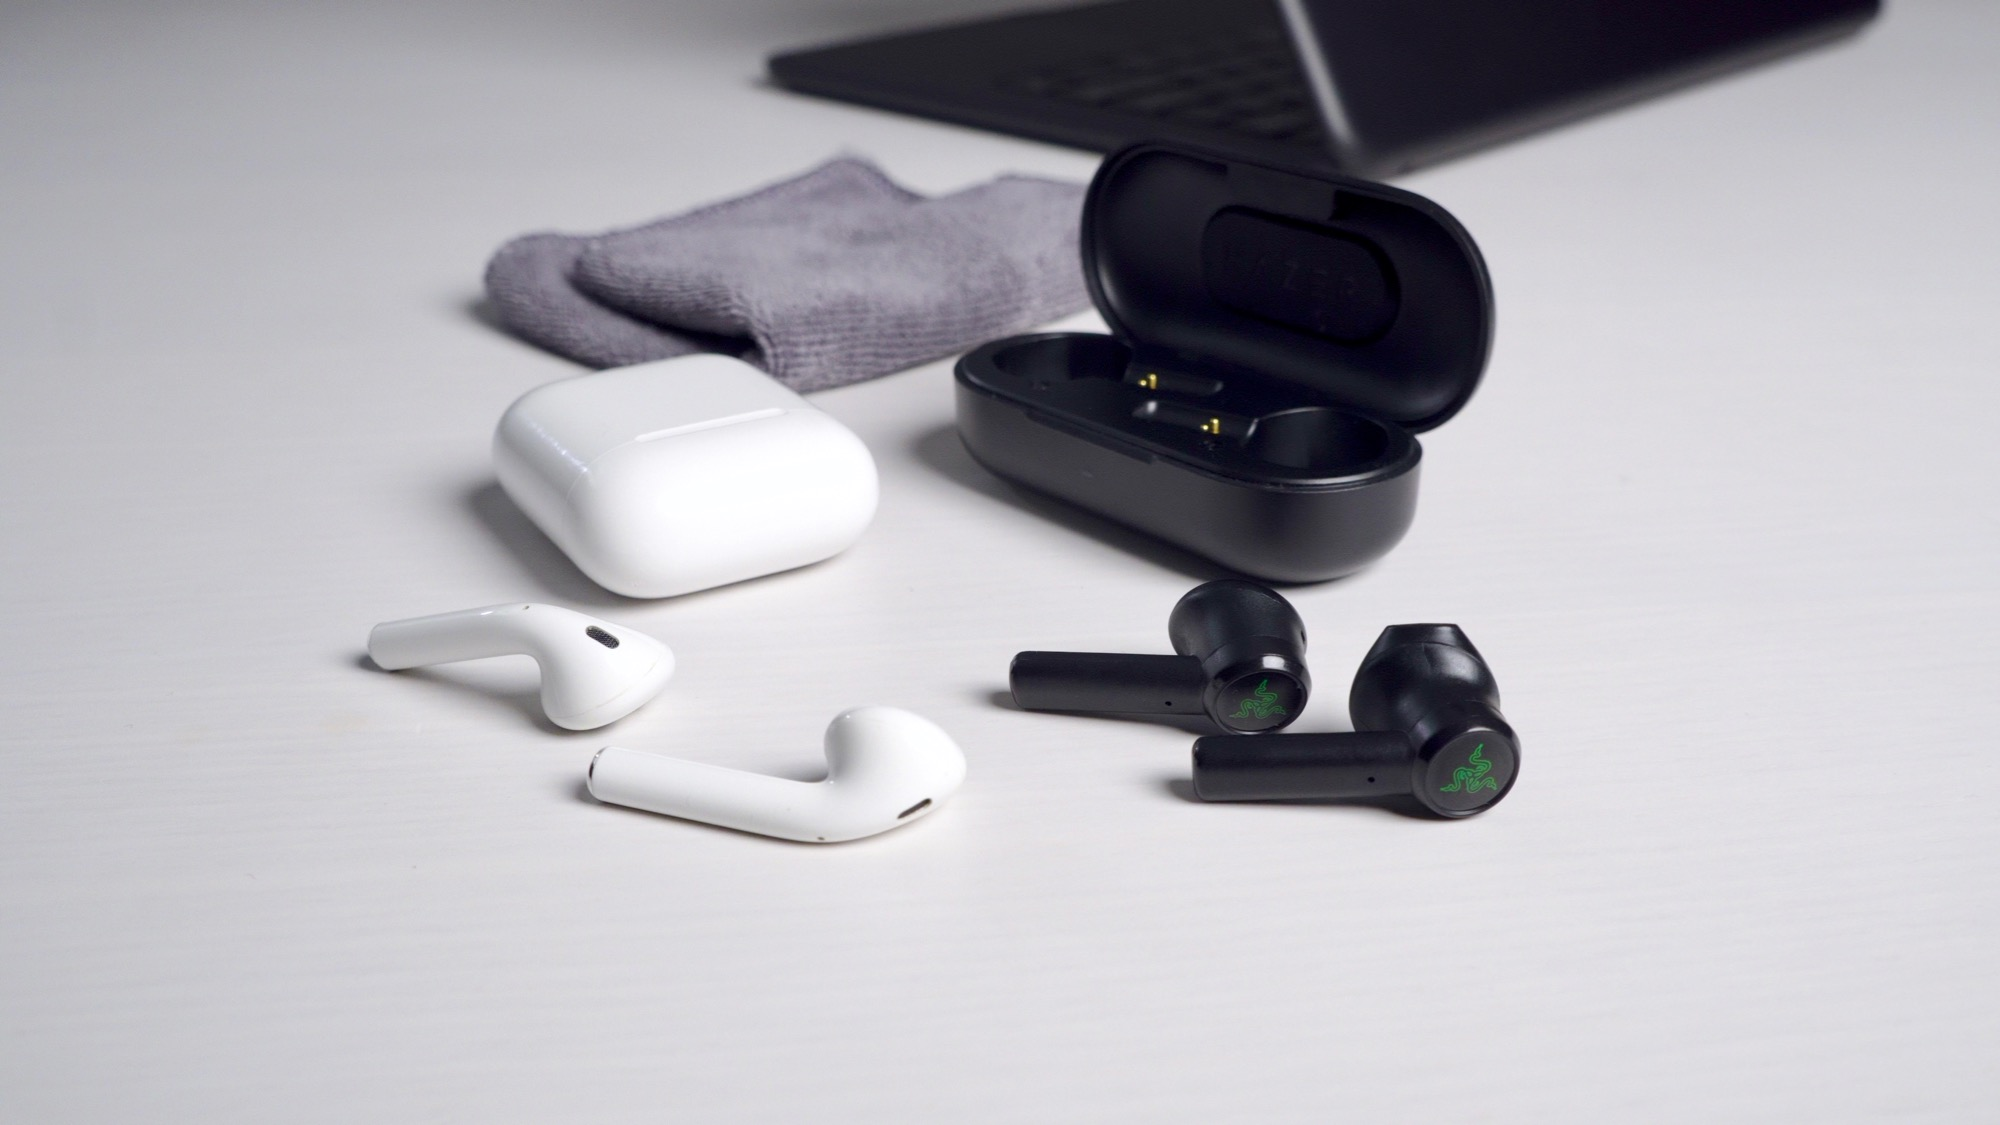 Why Razer's new wireless earbuds replaced AirPods in my pocket [VIDEO]